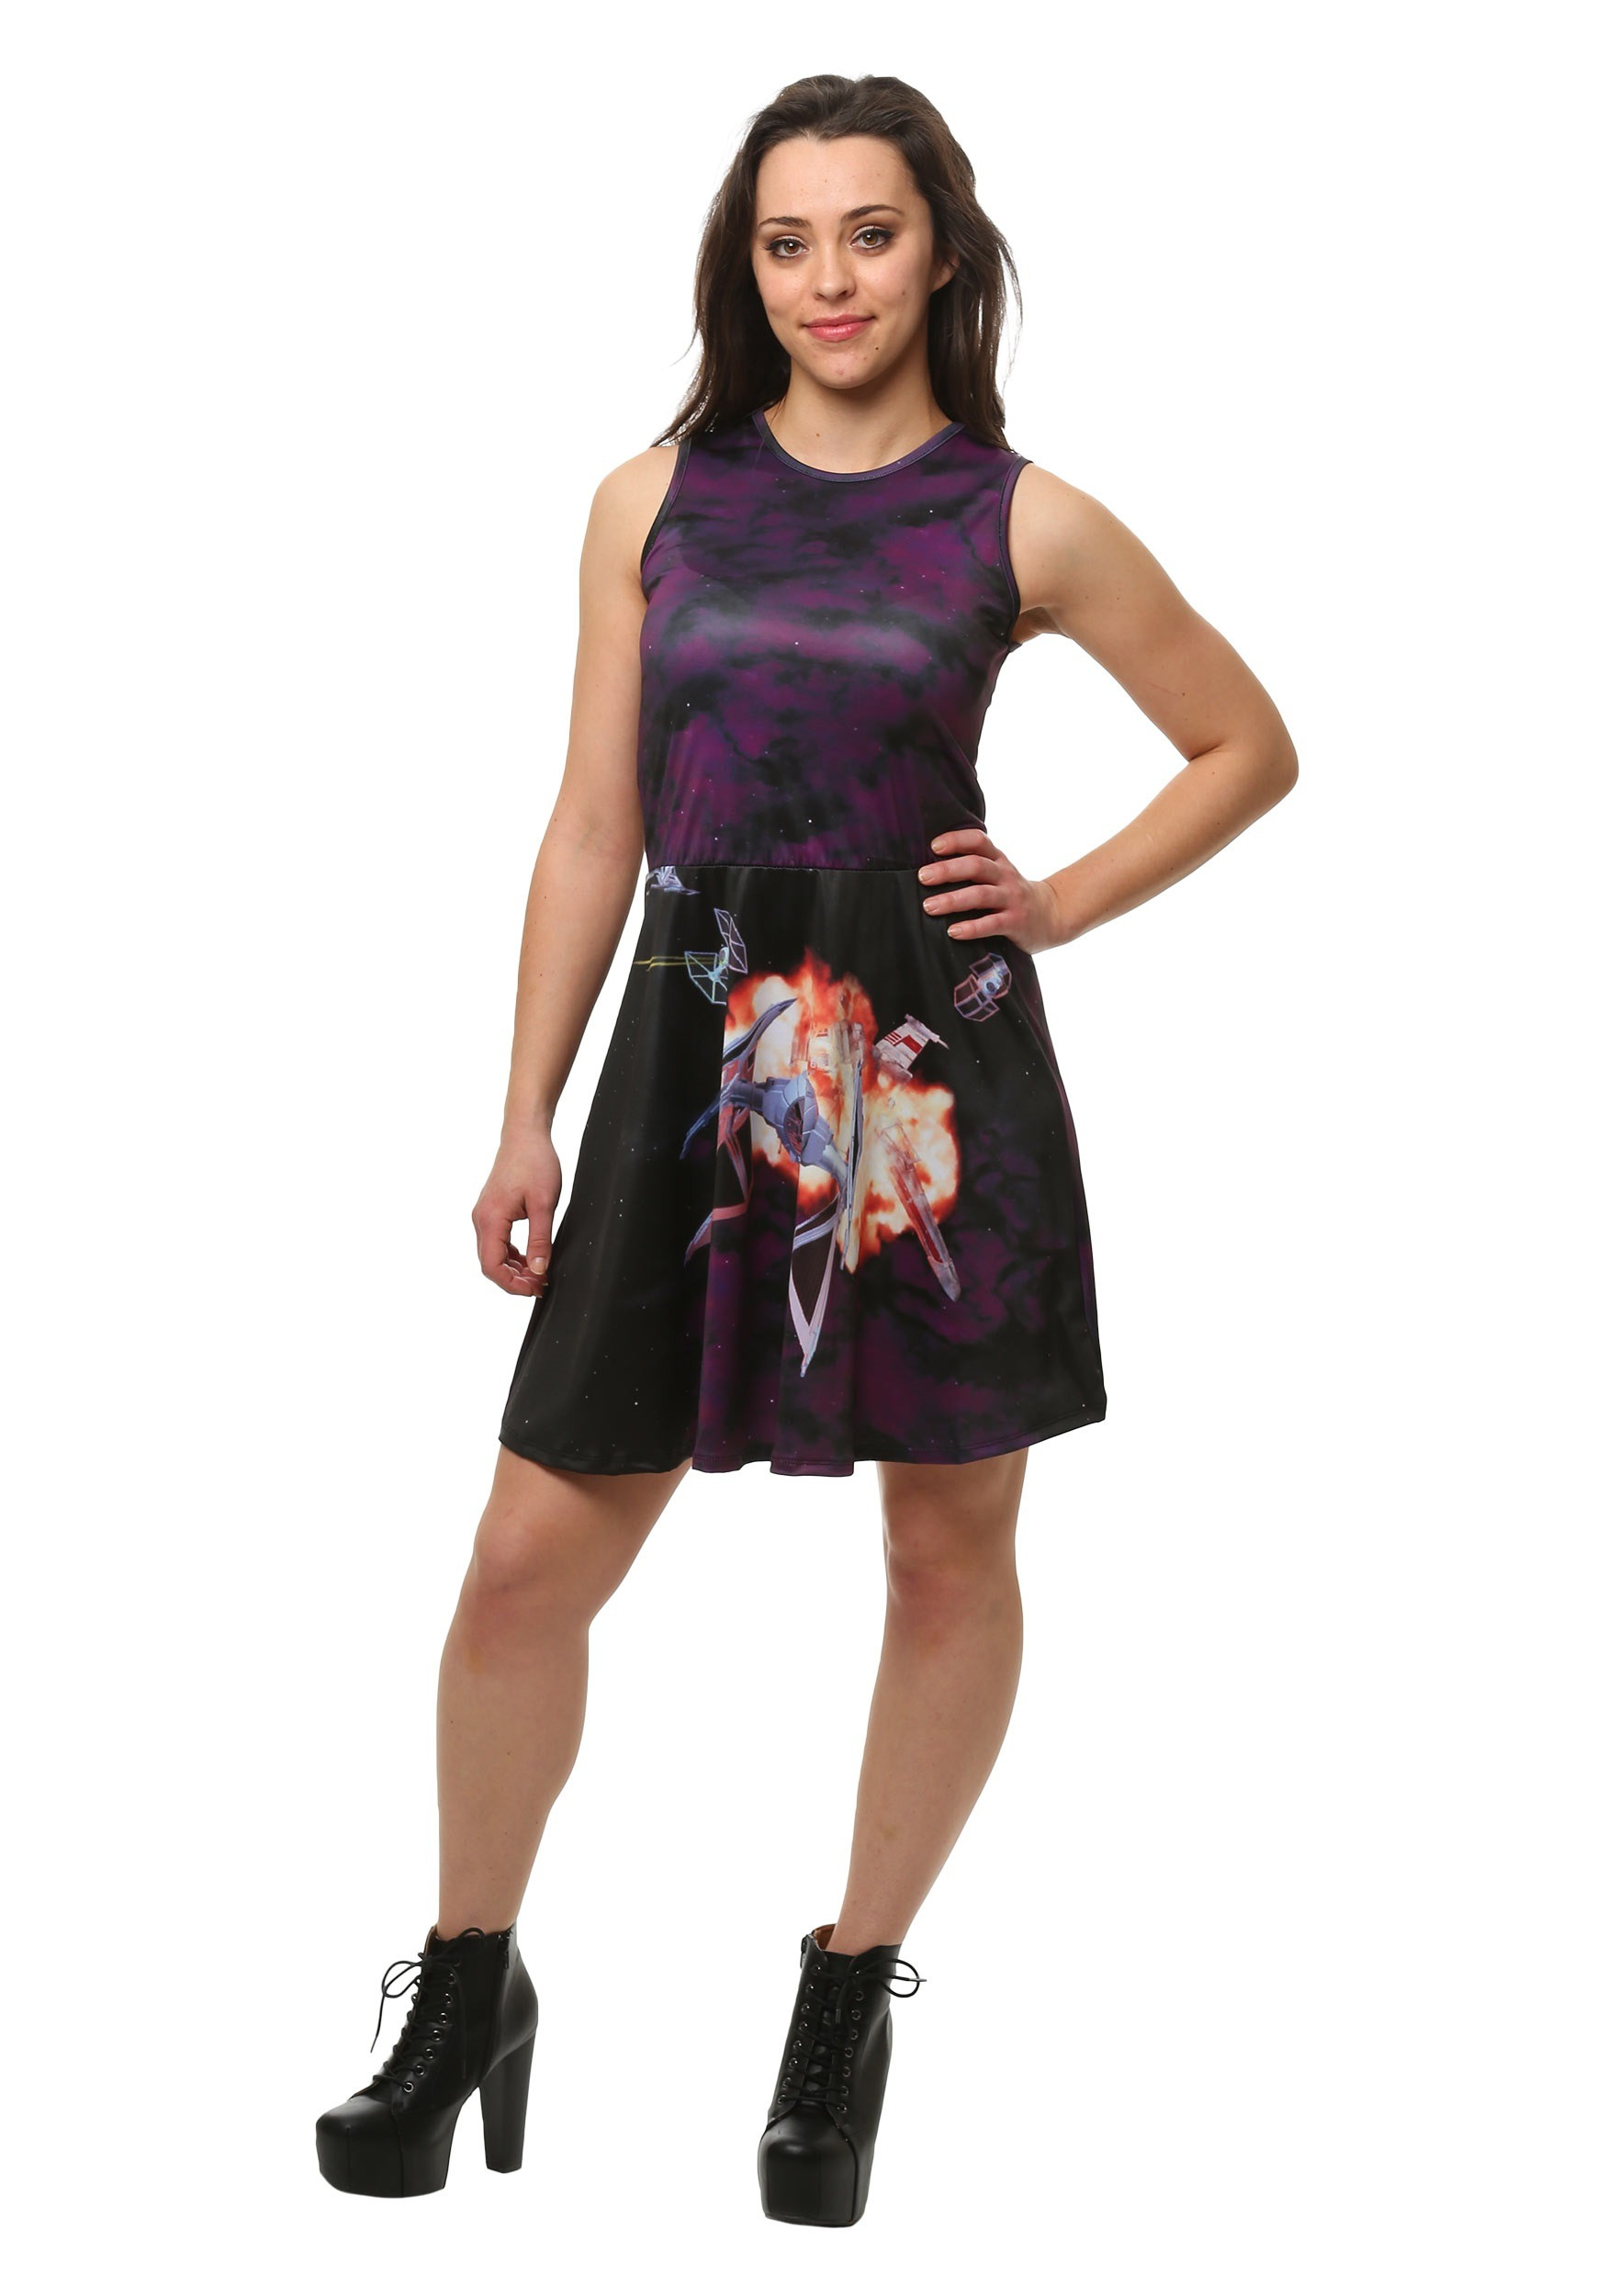 504a92e7e4 Star Wars Sublimated Ship Scene Tank Skater Dress